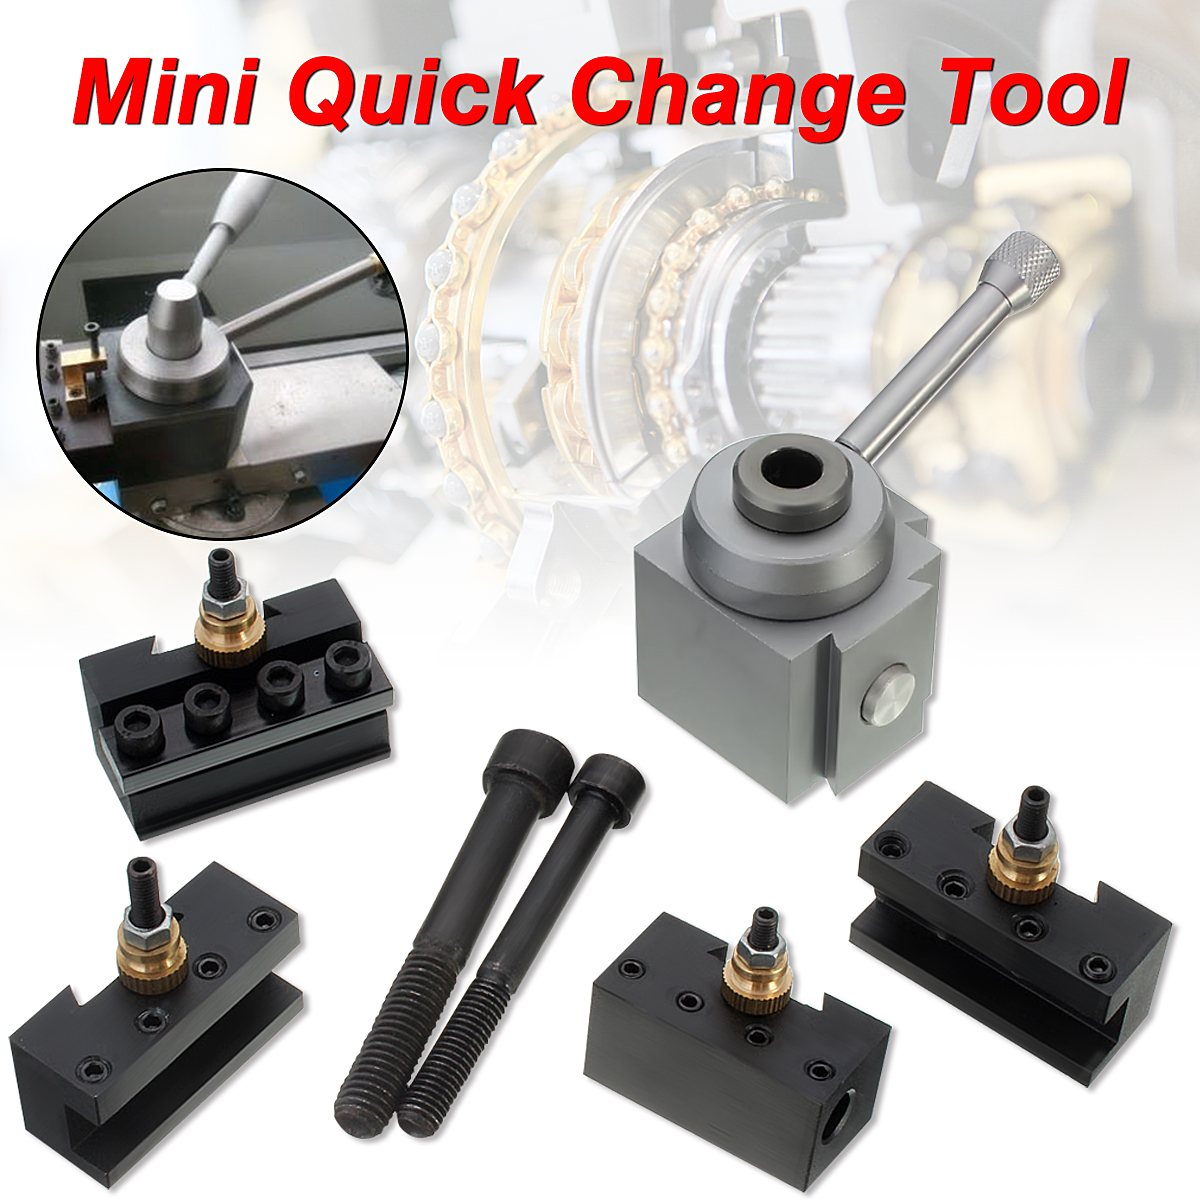 Mini Quick Change Tool Post Blade Holder Kit Set for 7 x10,12,14 Multifix Toolholder Table Lathes